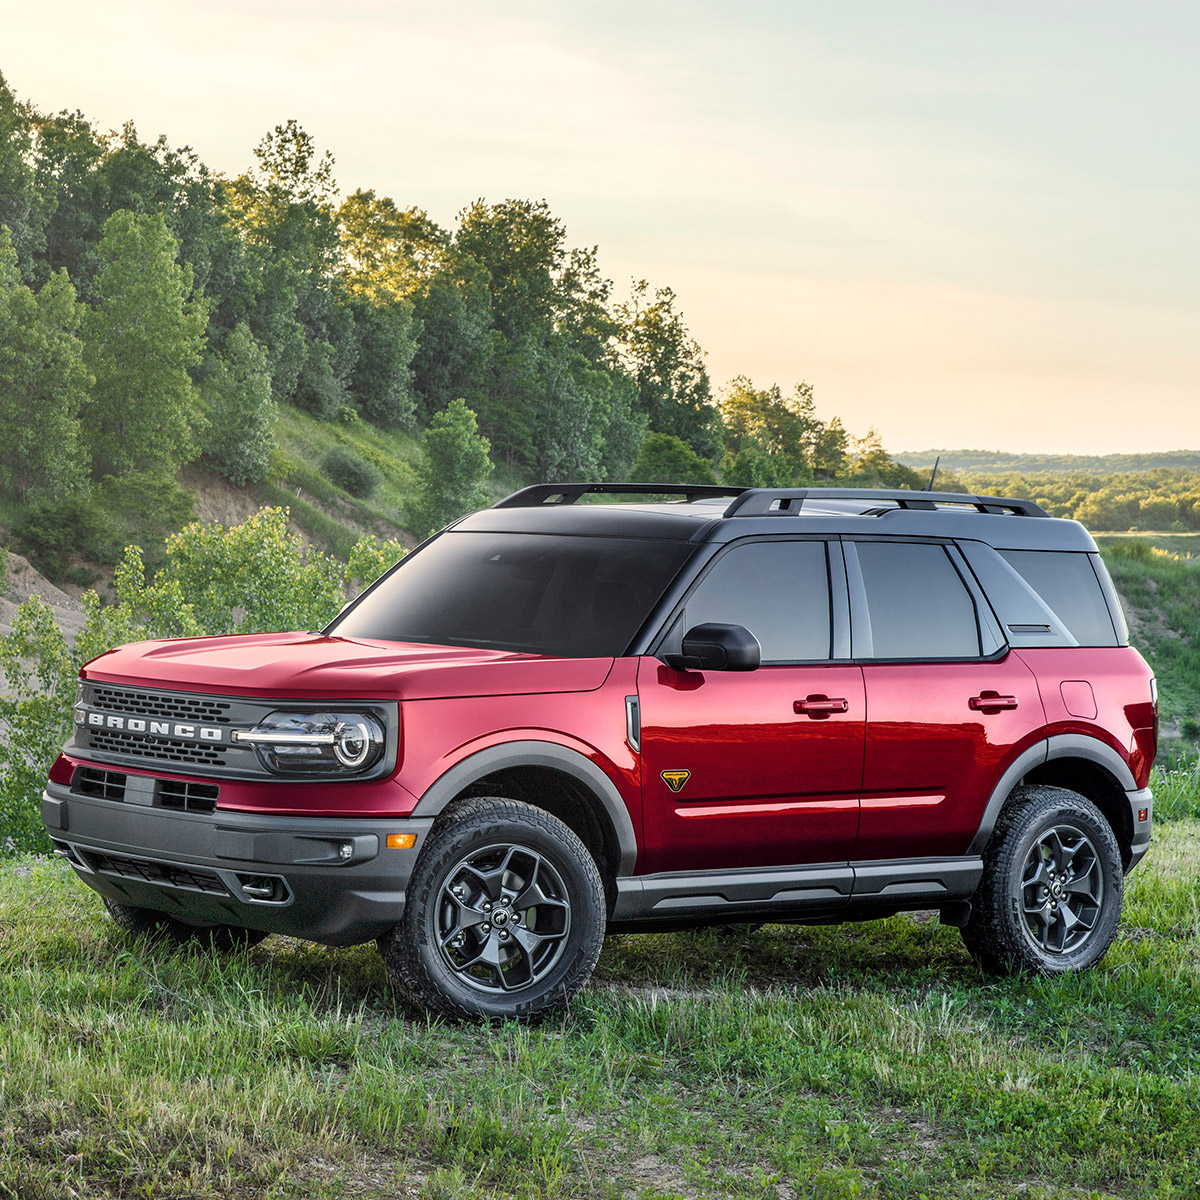 side profile of ford bronco sport in red color parked  on grass surrounded by green mountains